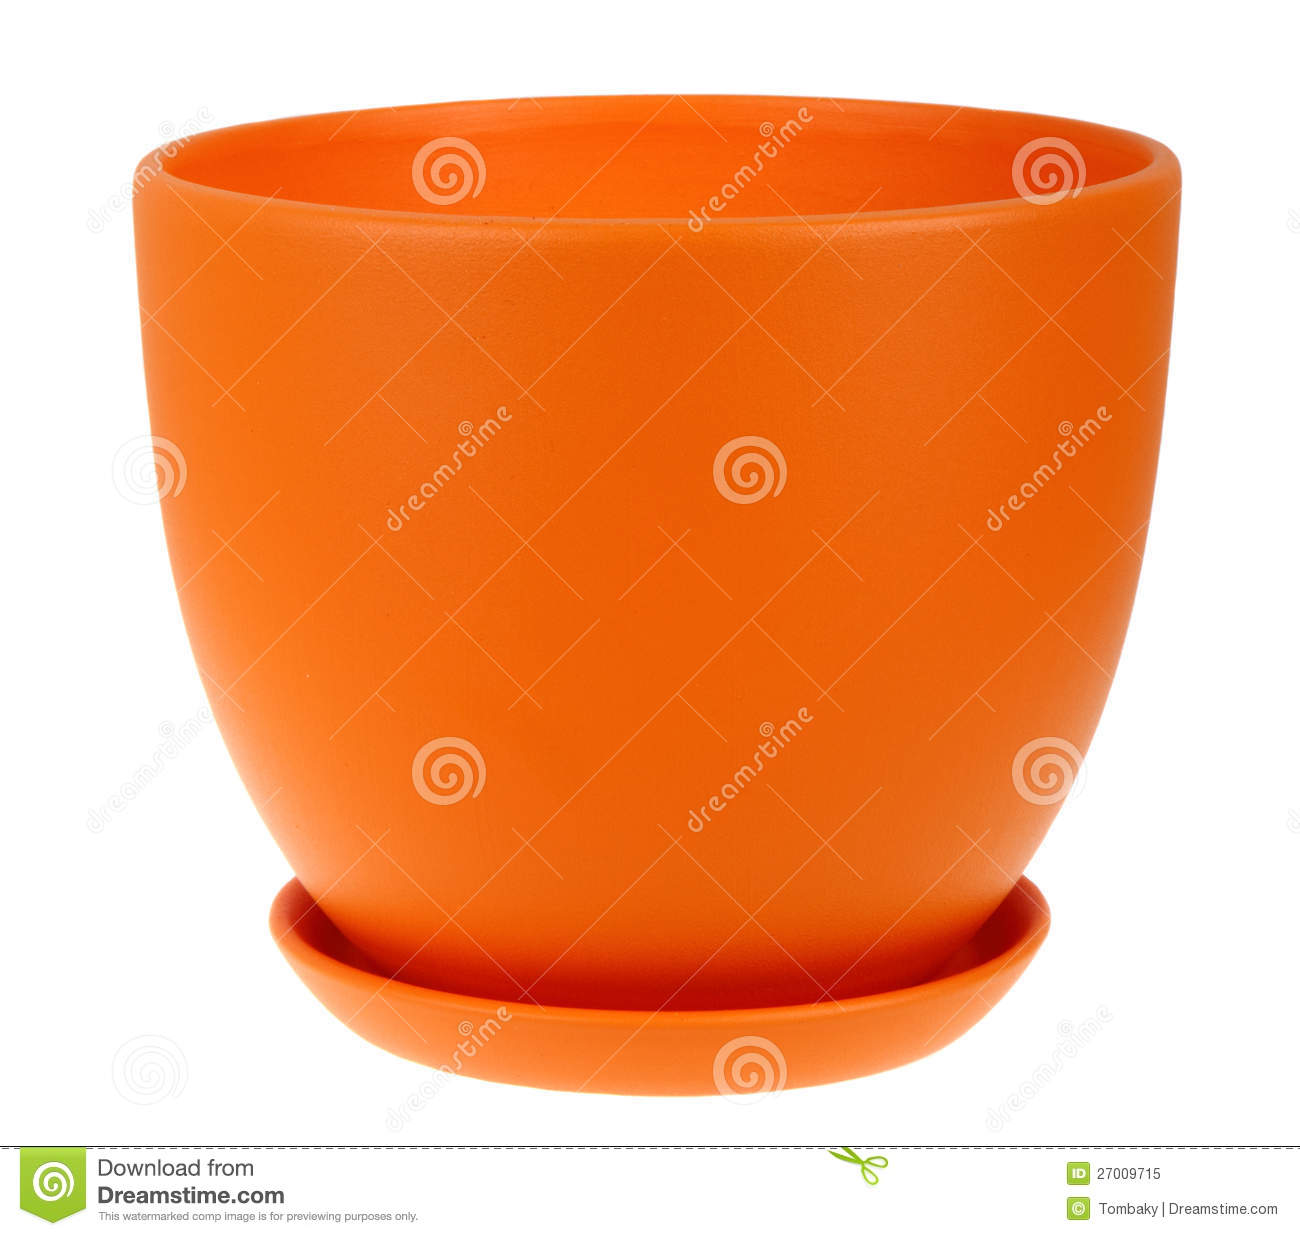 219 & Empty flower pot stock image. Image of horticulture gardening ...